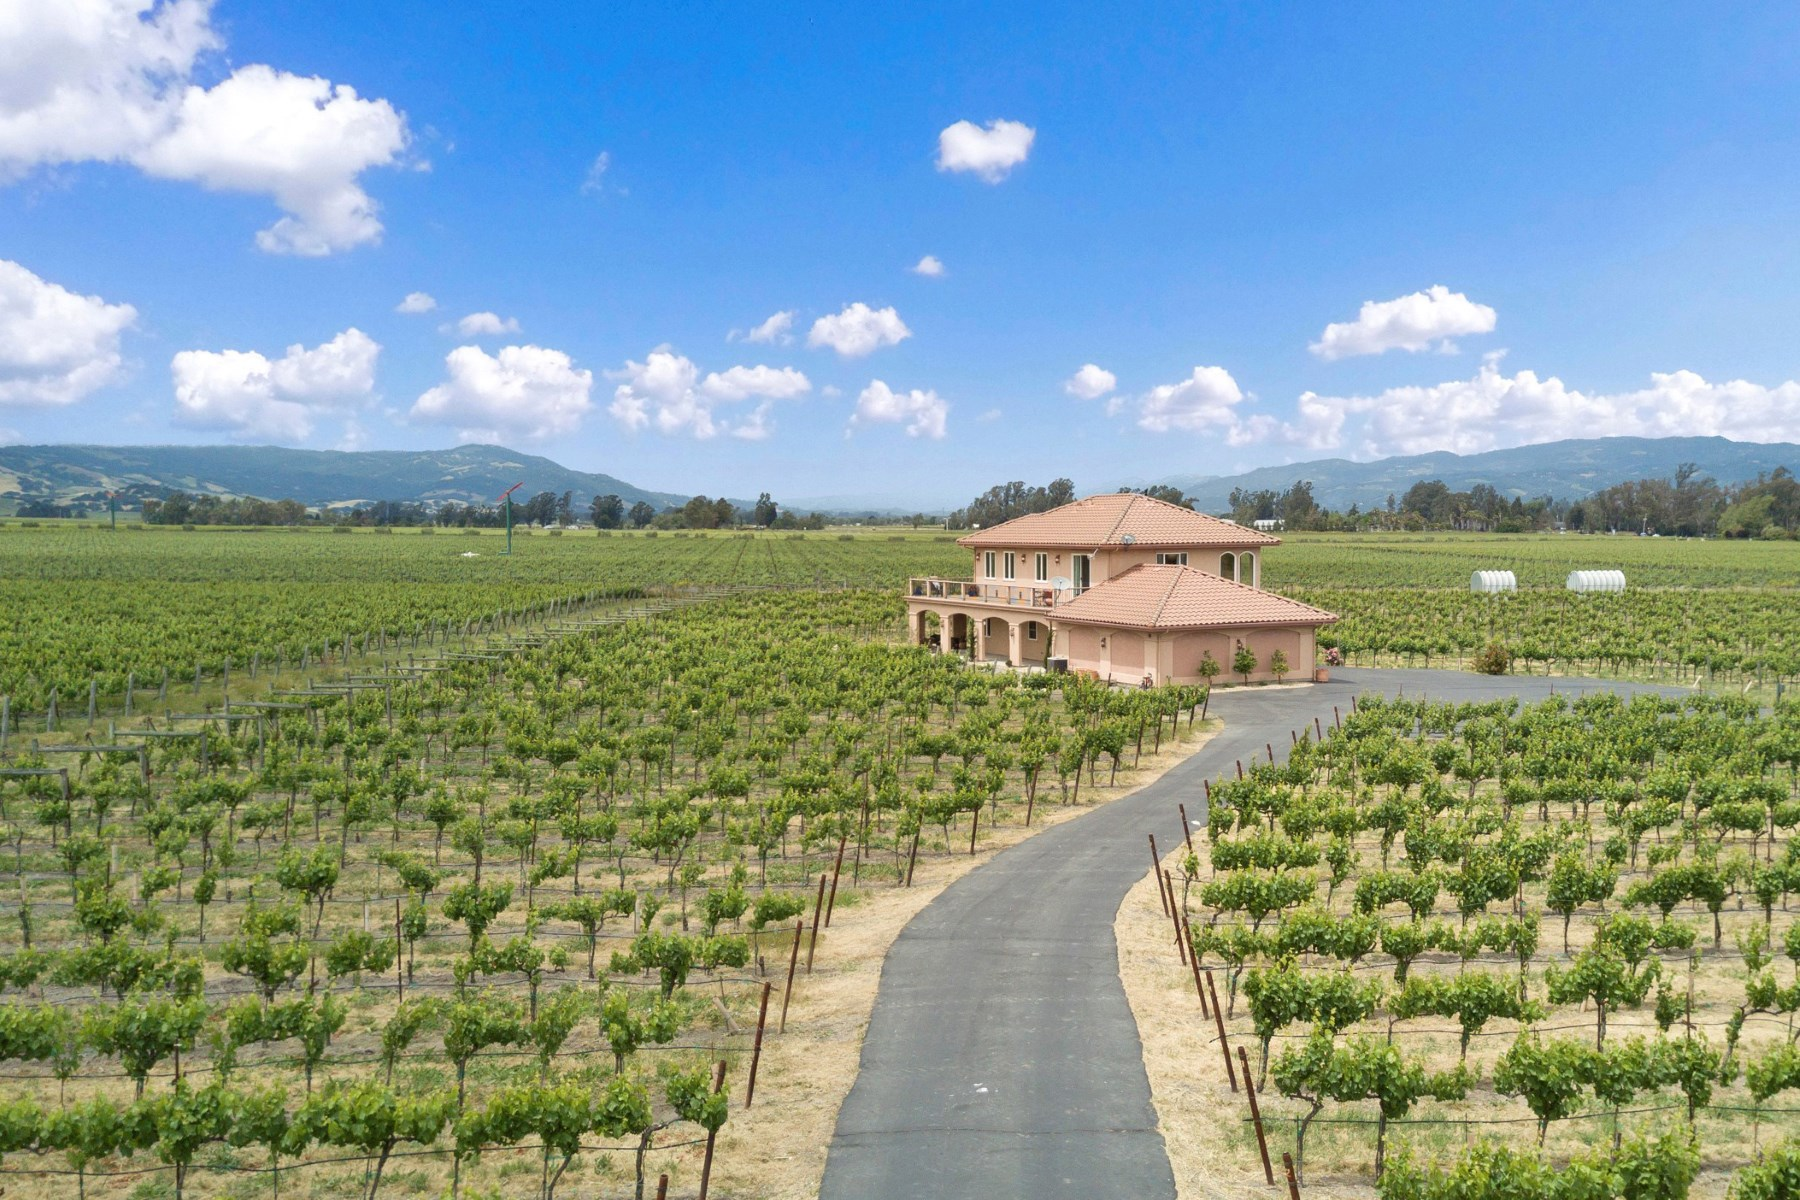 Vineyard for Sale at Sonoma Valley Vineyard Estate 196 Meadowlark Ln Sonoma, California, 95476 United States